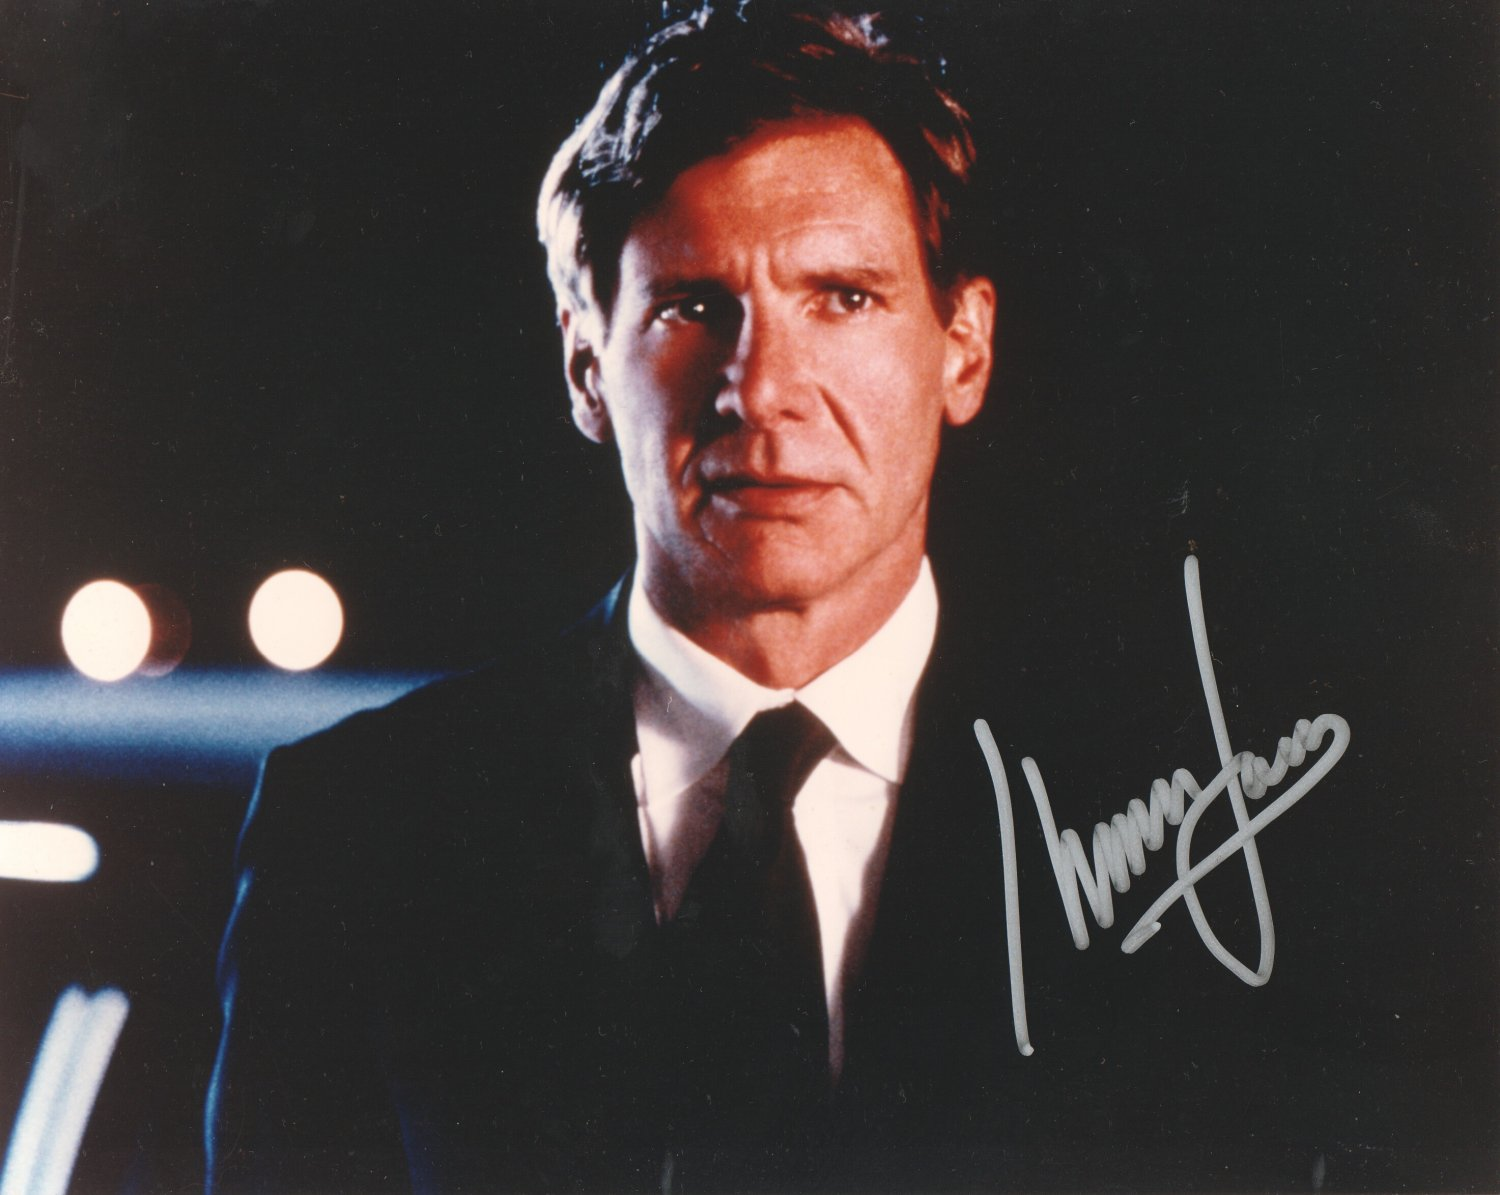 HARRISON FORD - HANDSOME ACTOR - HAND SIGNED AUTOGRAPHED PHOTO WITH COA